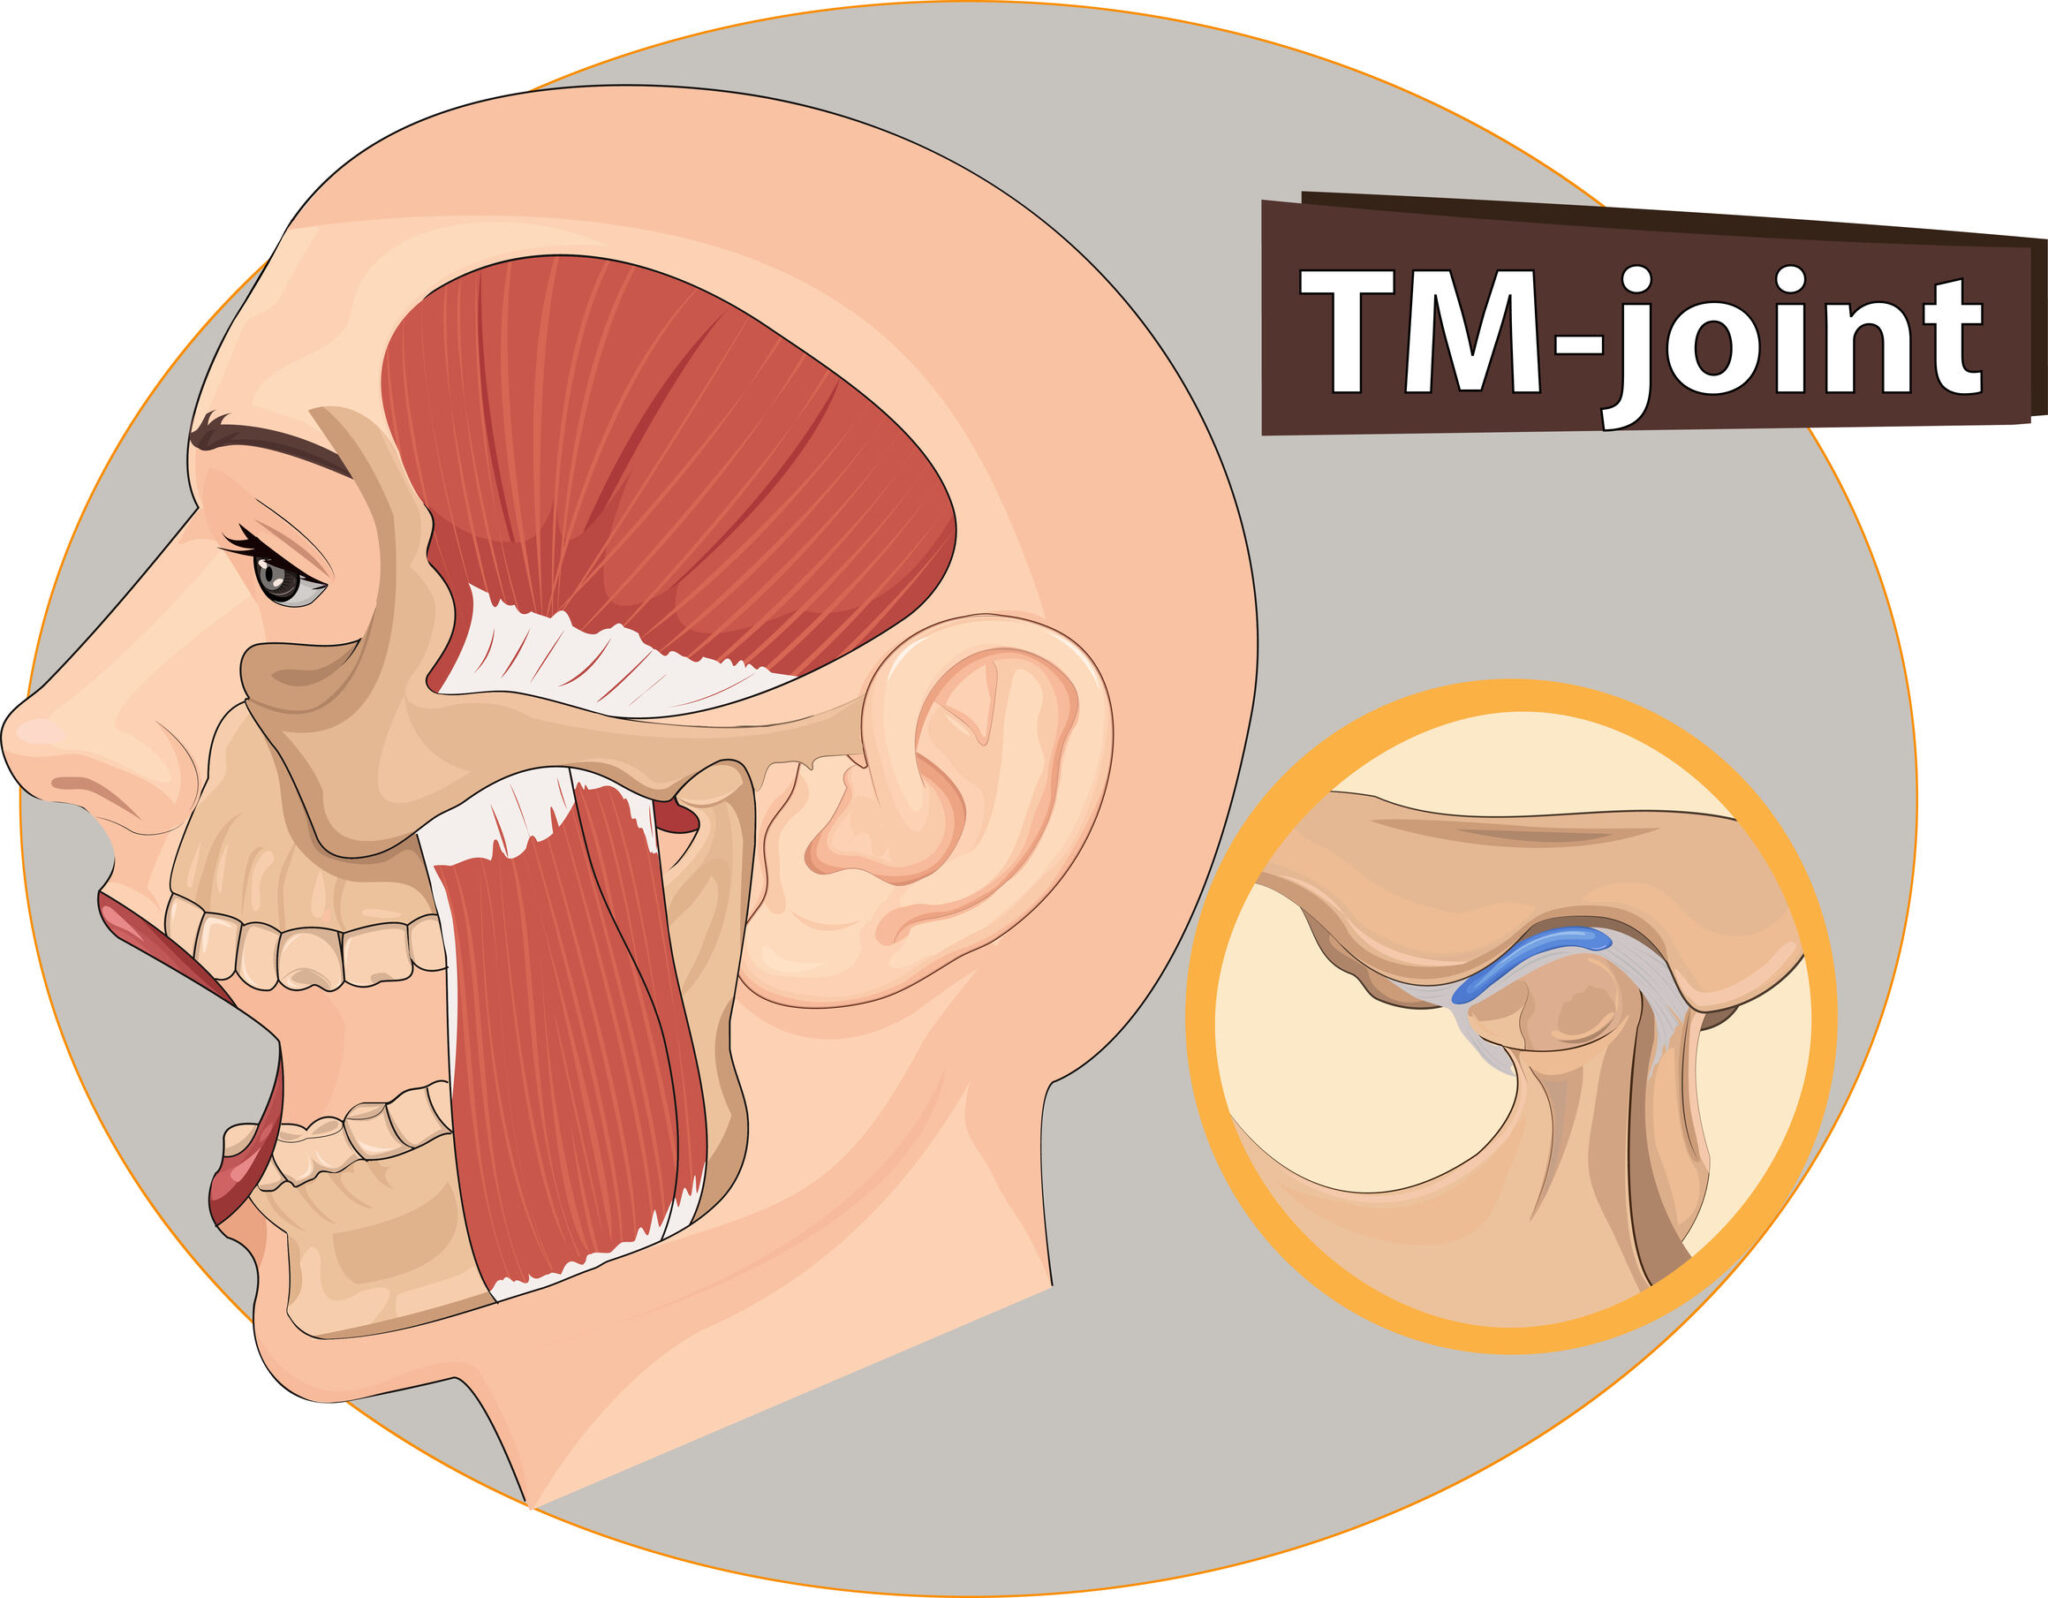 image of TMJ